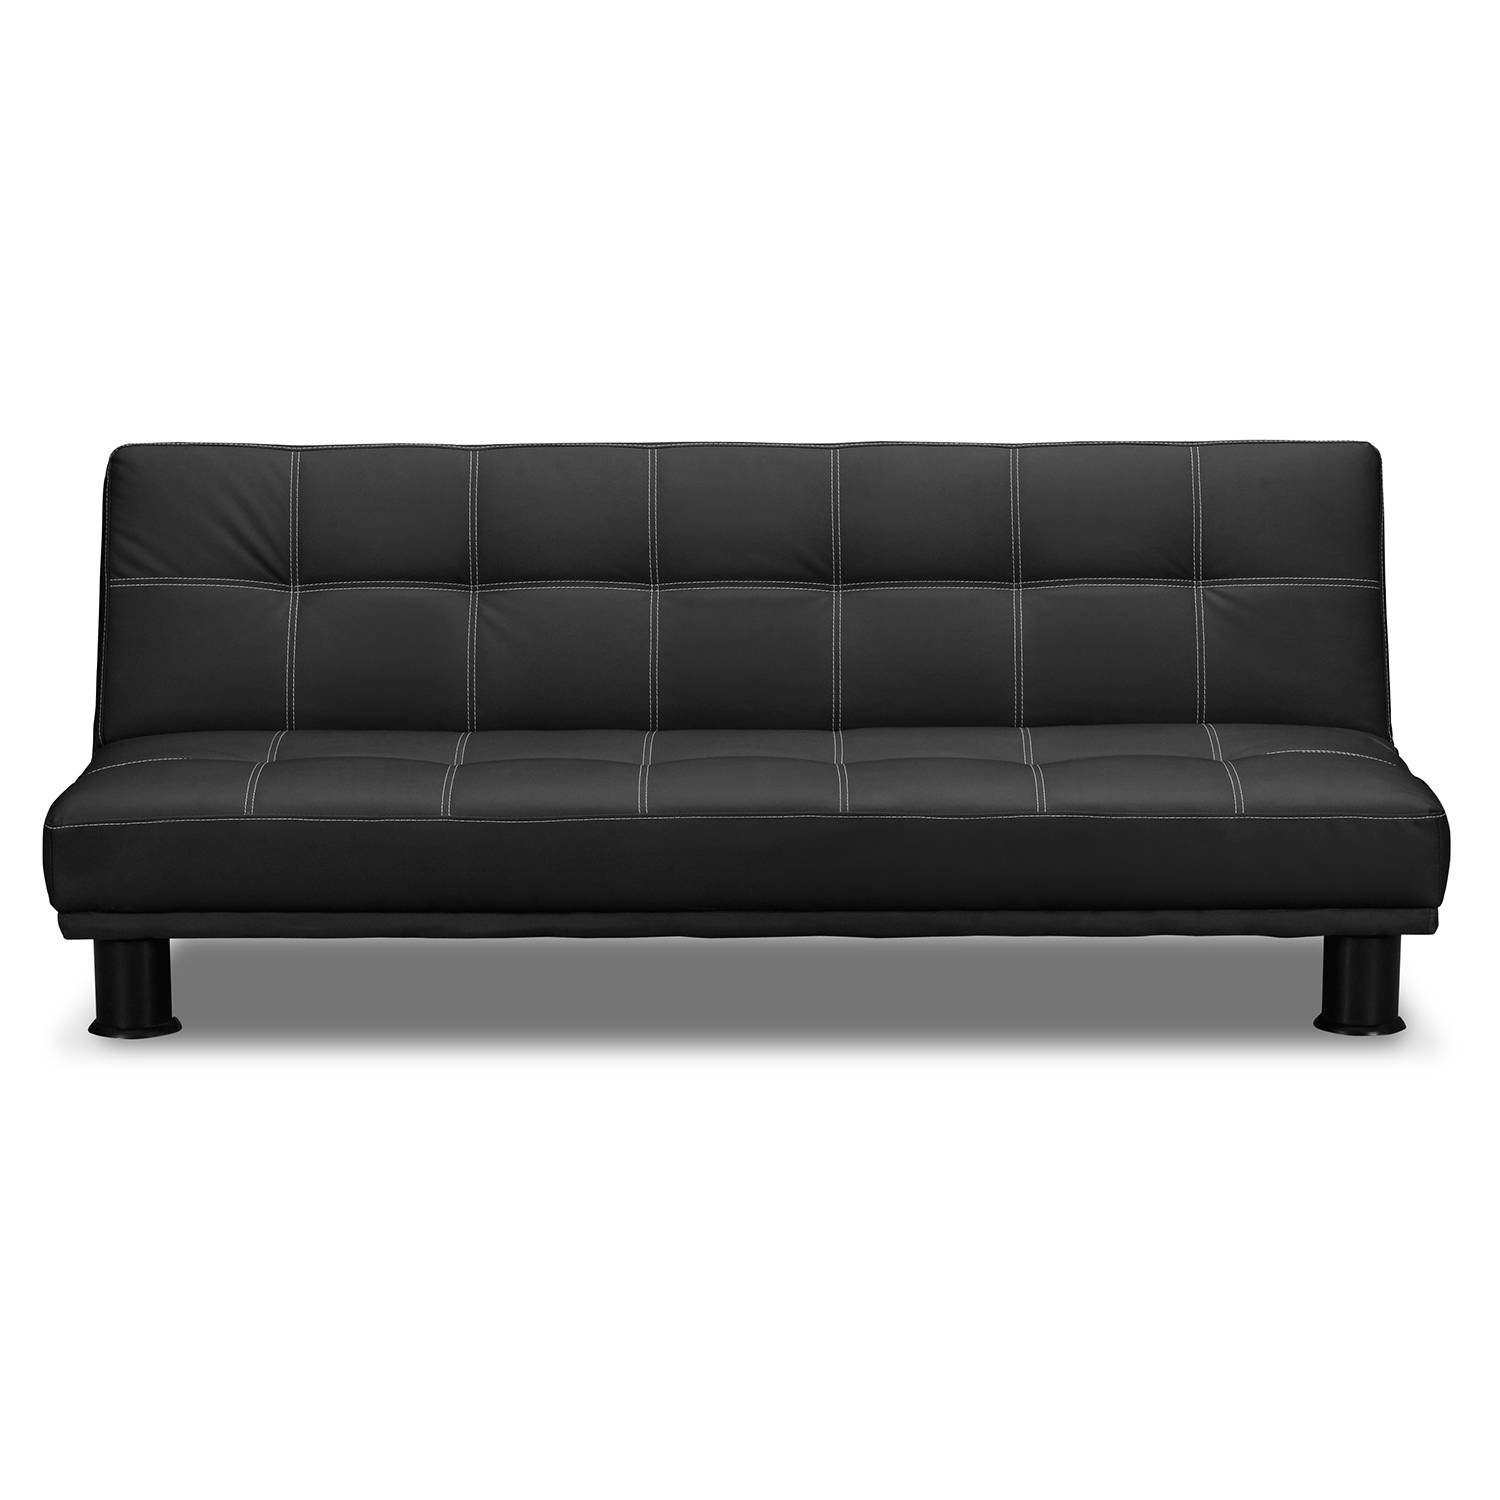 Fabulous Black Leather Futon Sofa Bed Futons Living Room Seating Inside City Sofa Beds (View 7 of 30)